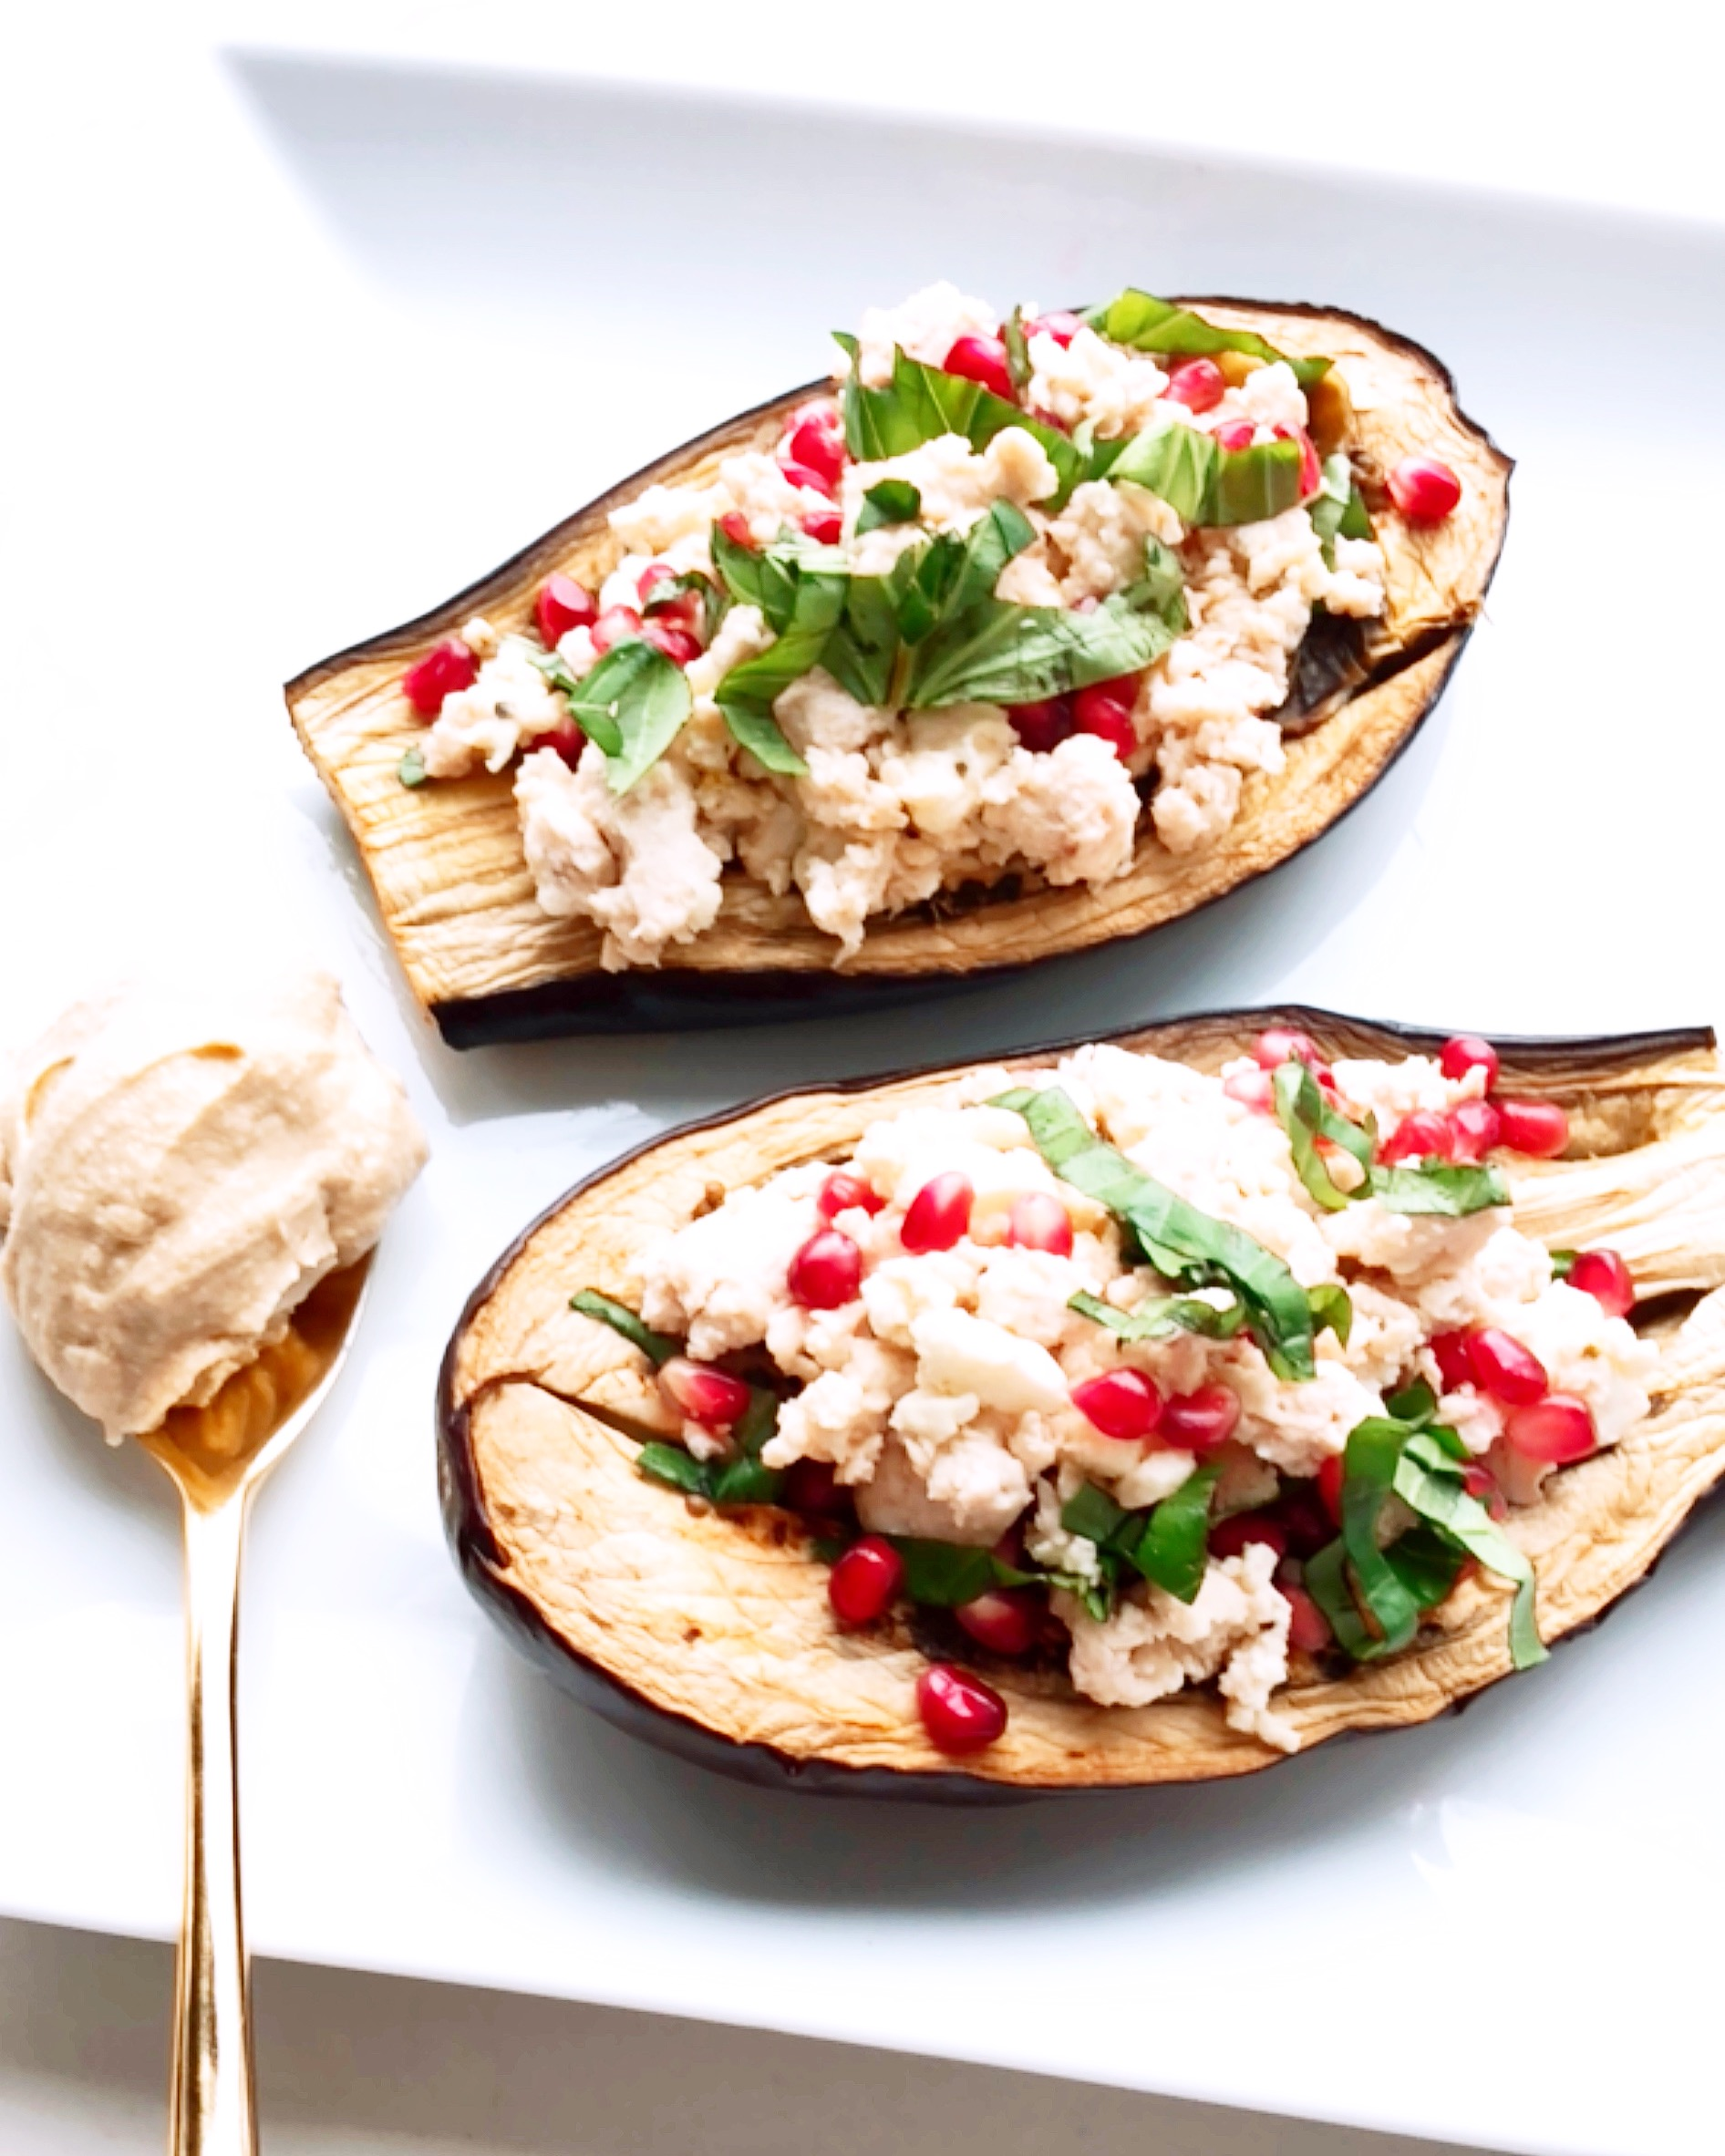 Lemon Chicken Stuffed Eggplant